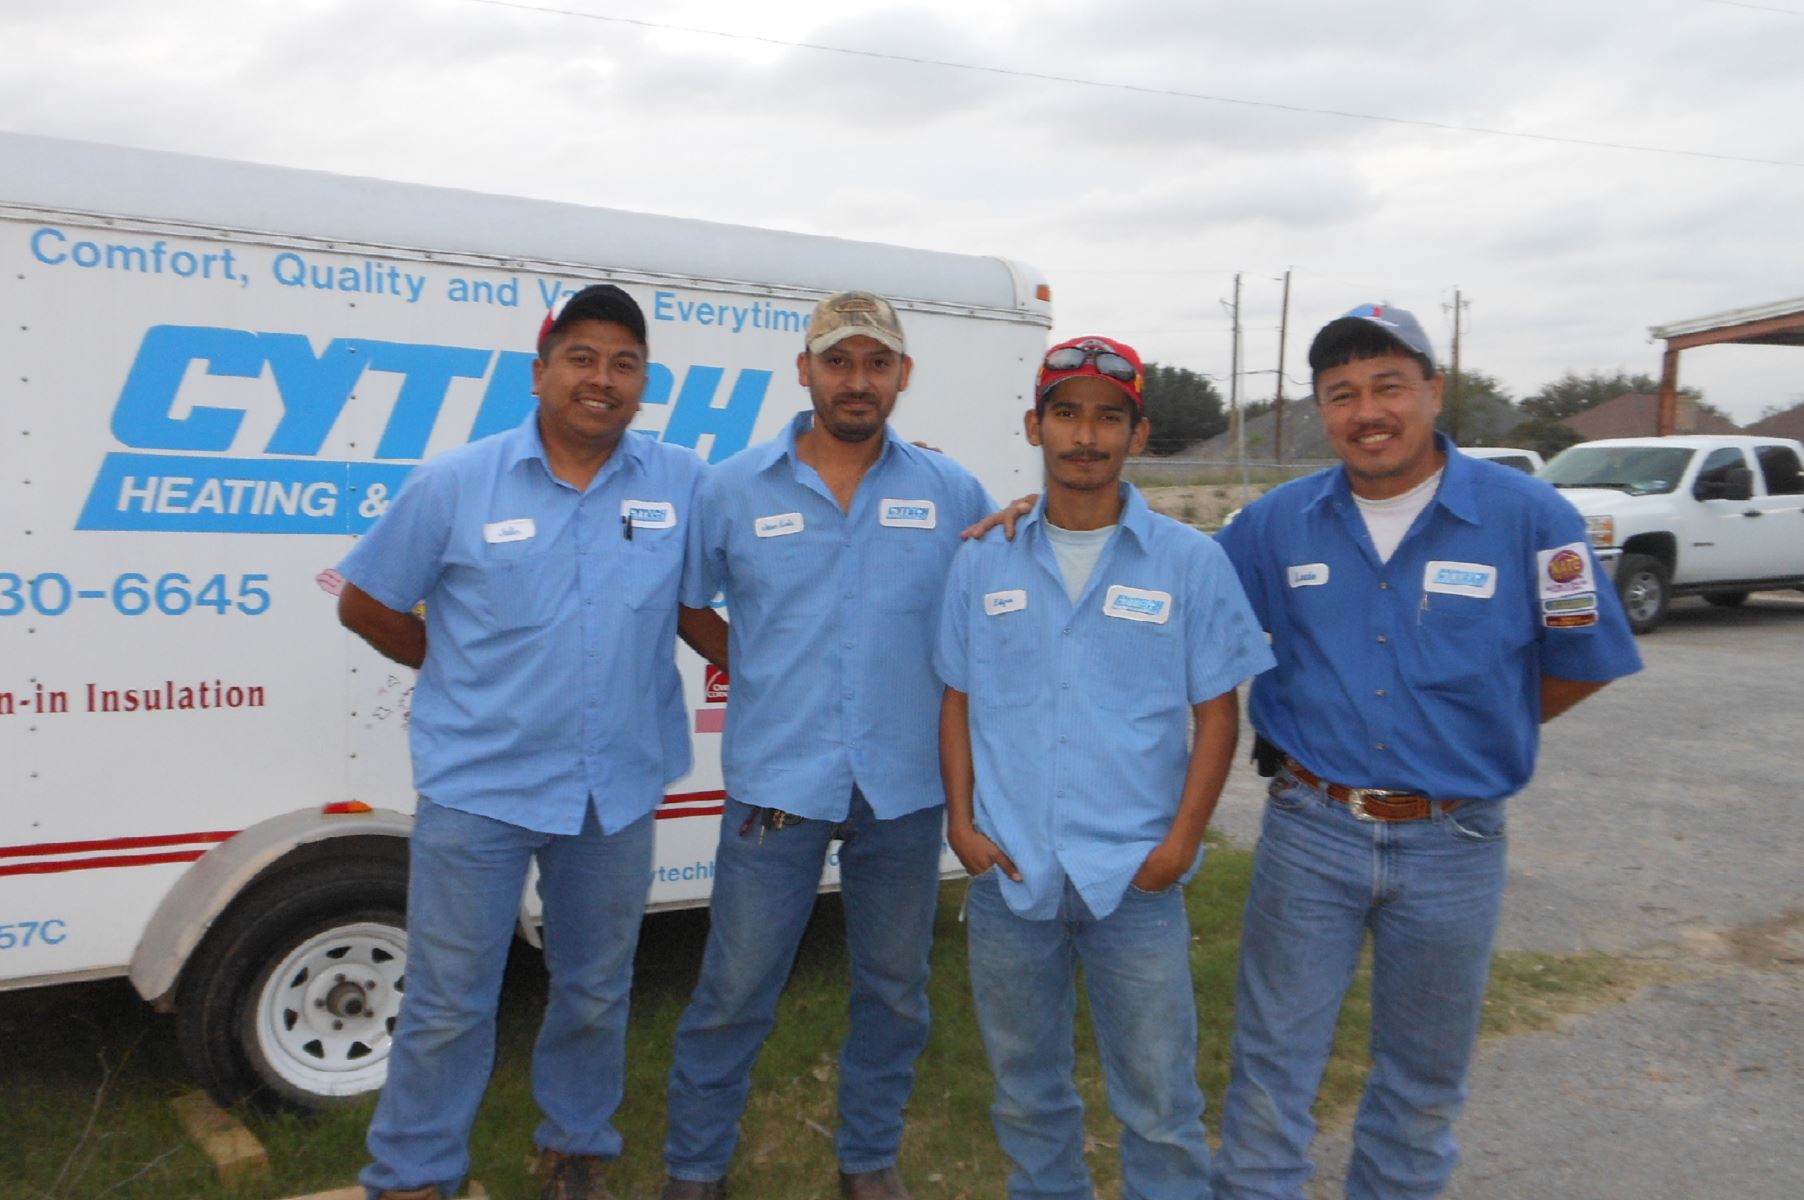 The Cytech crew: Comfort, Quality and Value...Every Time!